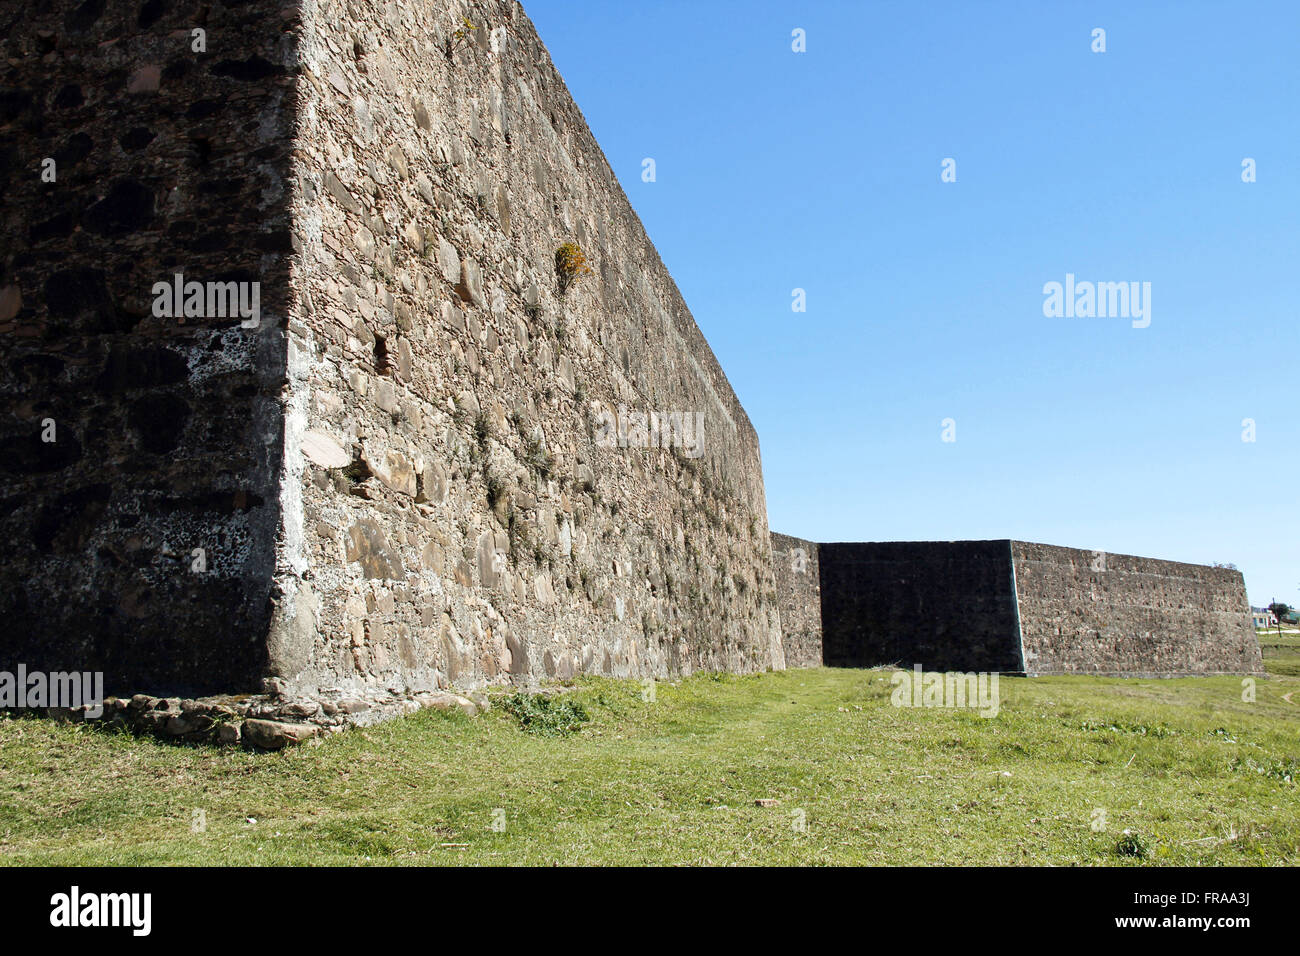 Ruins of Fort Dom Pedro II in a hexagonal polygon format - built in 1848 - Stock Image